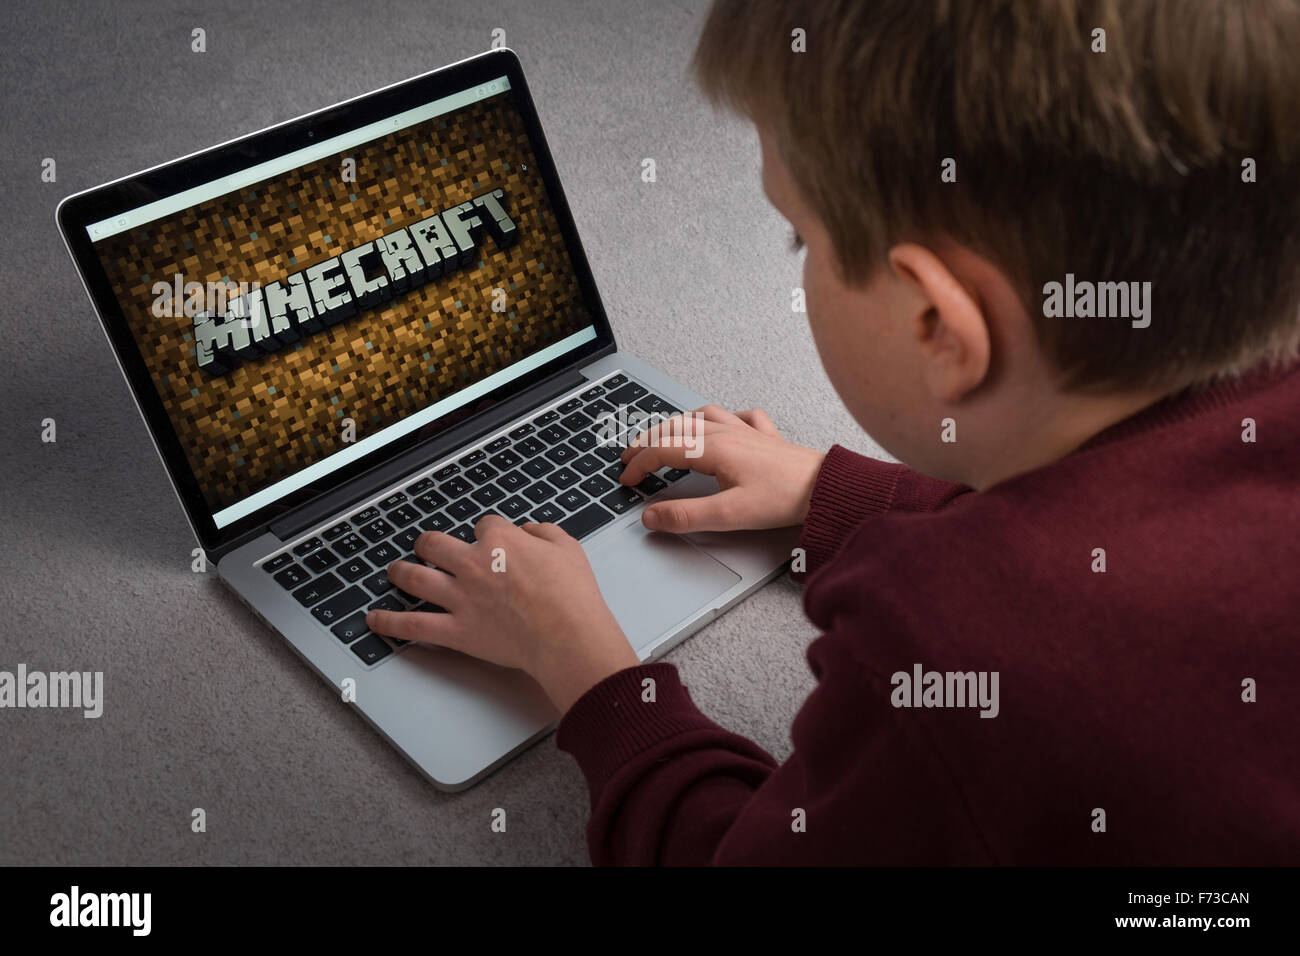 A child playing the Minecraft computer game on a laptop - Stock Image